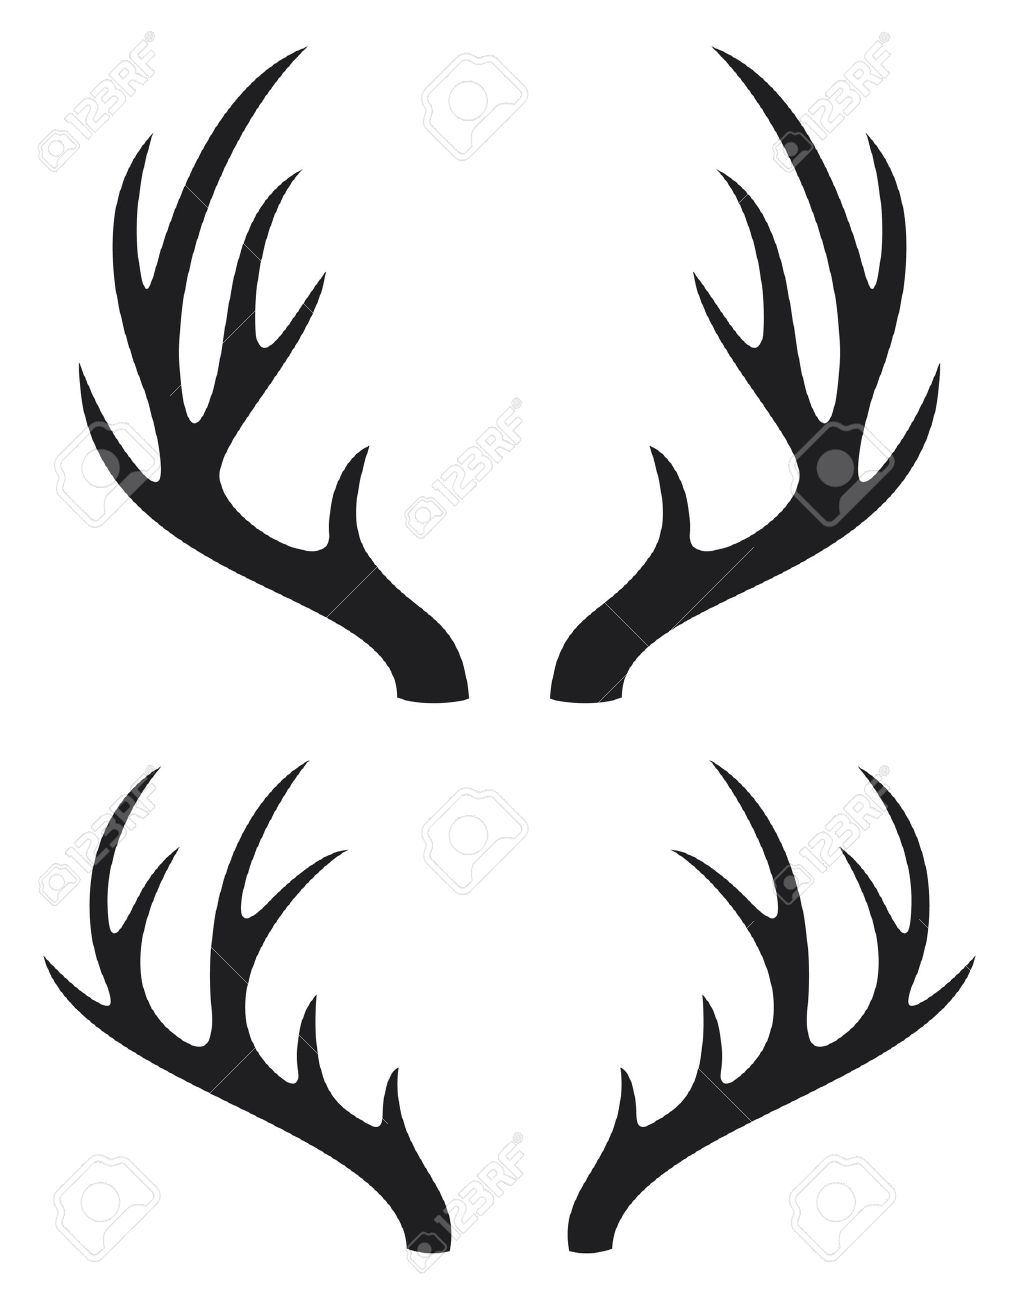 deer horns royalty free cliparts vectors and stock illustration rh 123rf com deer antlers vector free free deer antler vector images